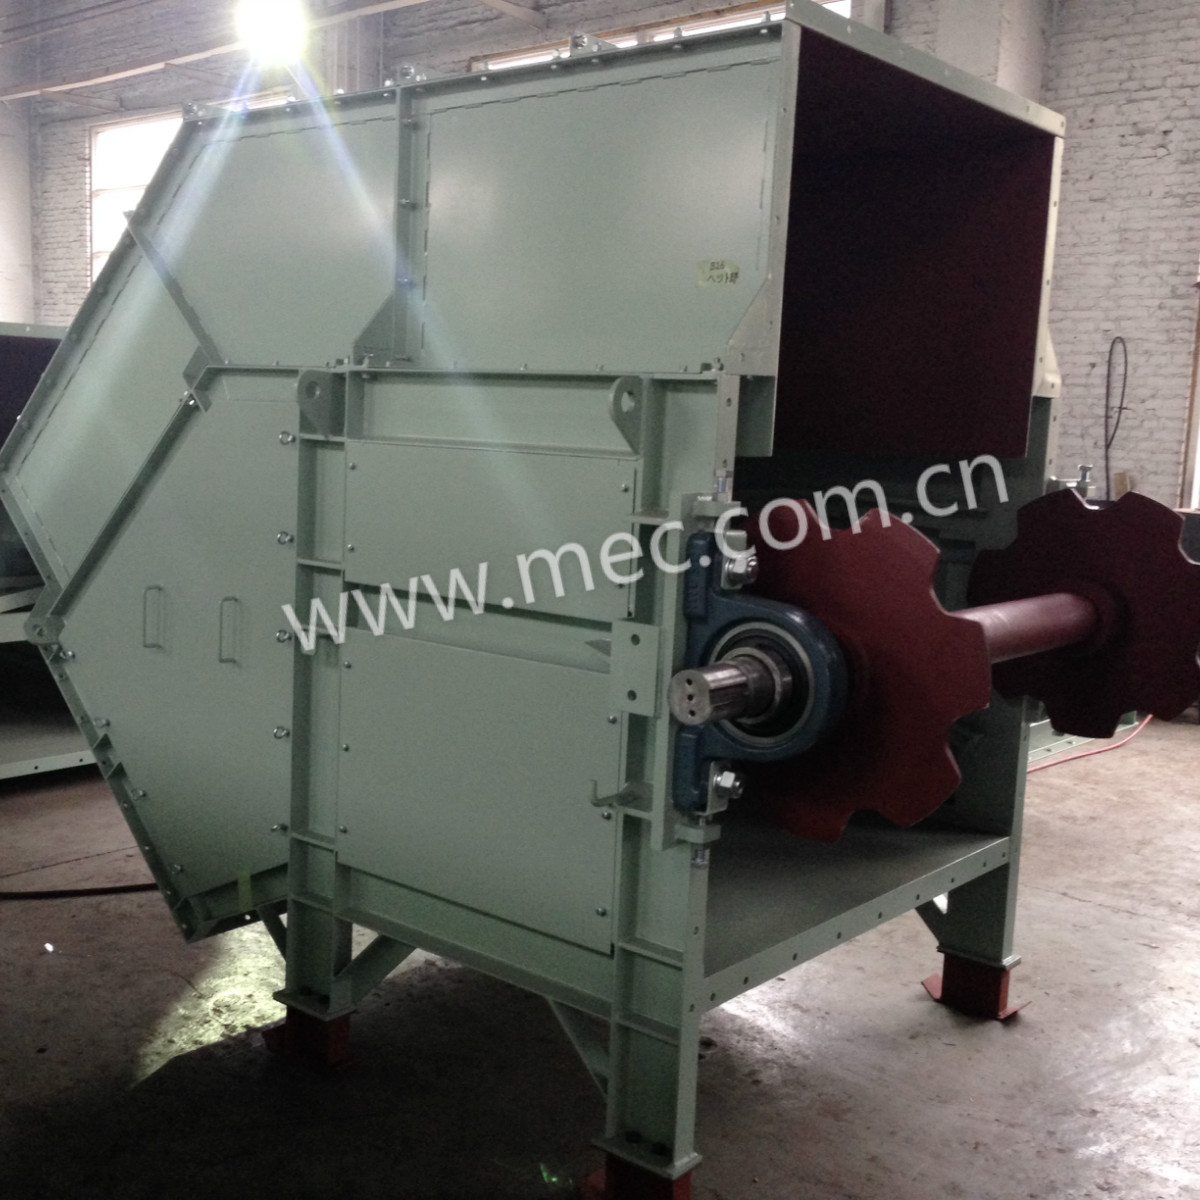 Dalian manufacturer ,Outsourcing services High quality Rubber Belt Conveyer/Apron Conveyer